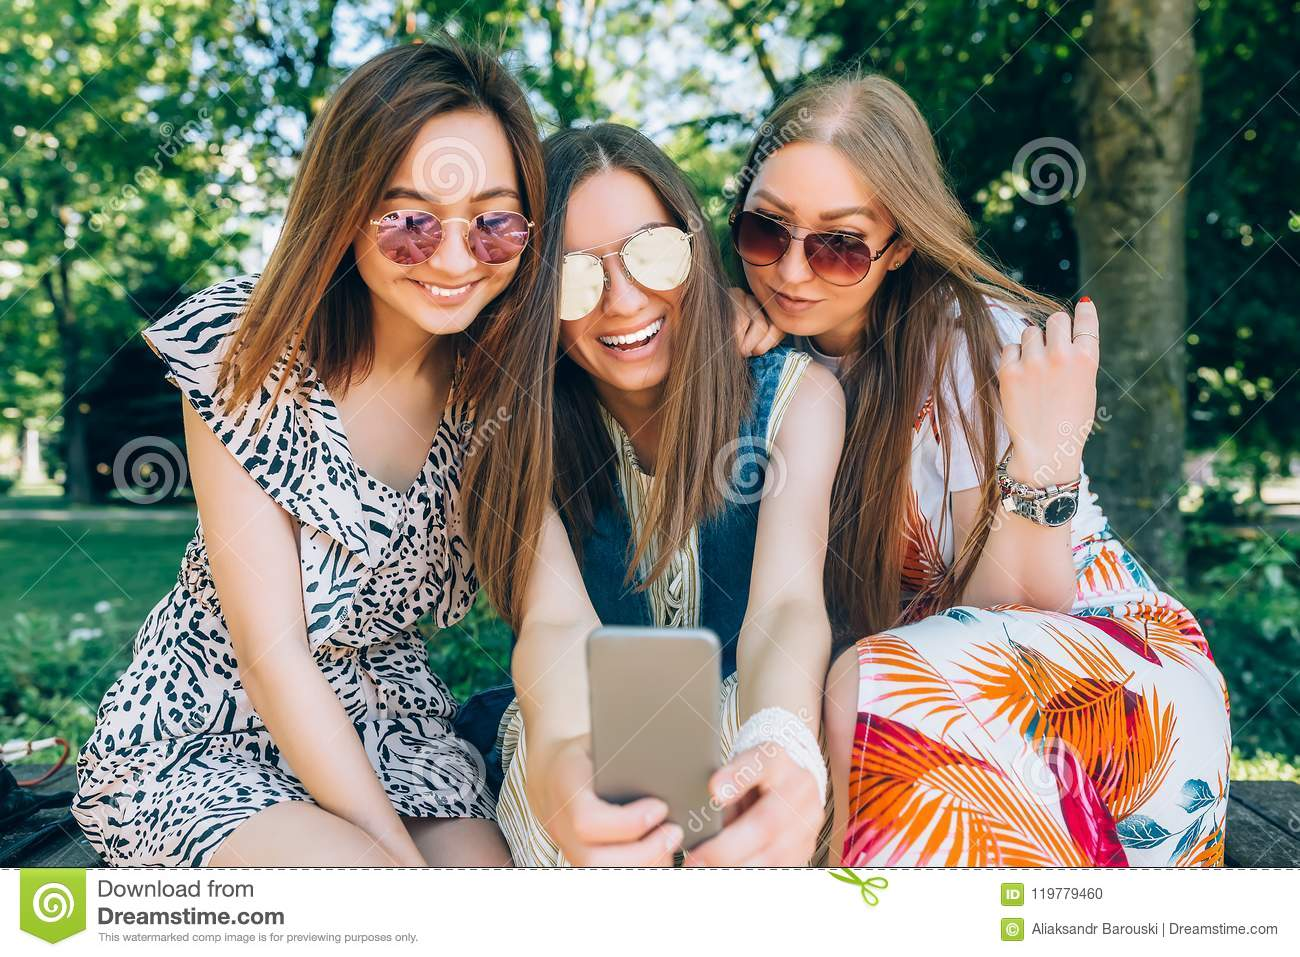 Happy friends in the park on a sunny day . Summer lifestyle portrait of three multiracial women enjoy nice day, wearing